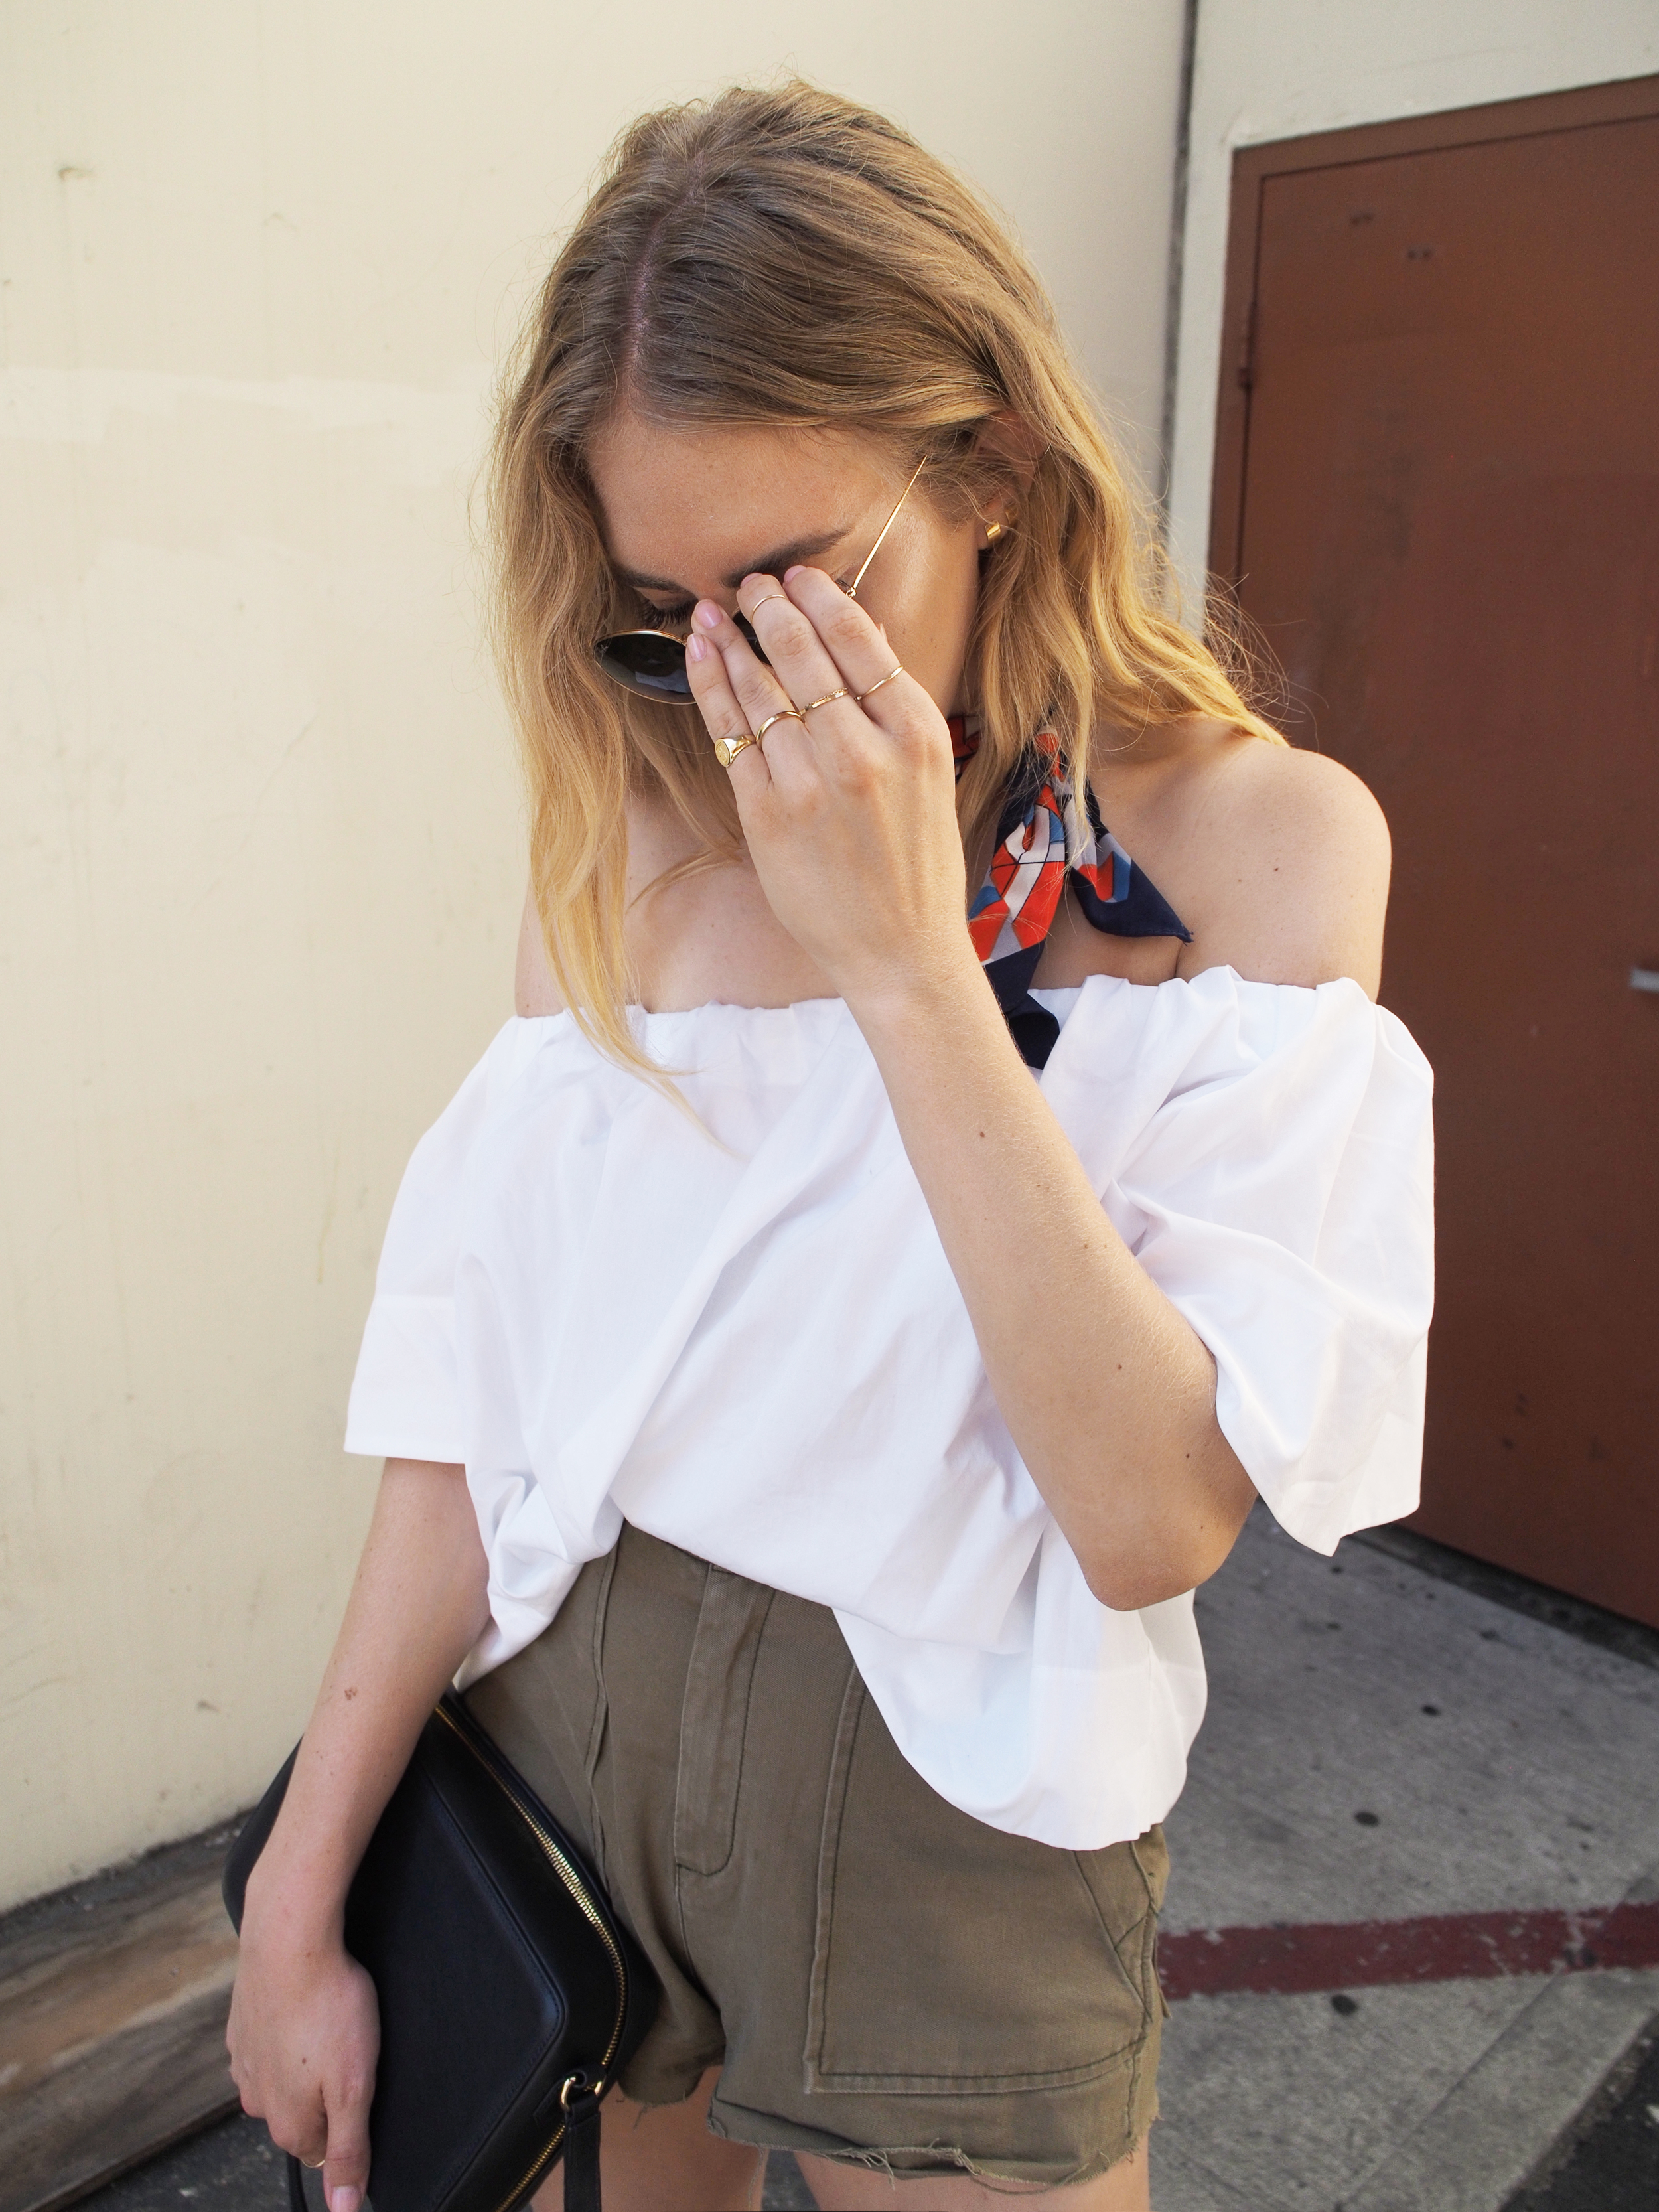 Vince Off The Shoulder Blouse Free People Gunner Cargo Shorts Manufacture Pascal Lady Officer Past Midnight Silk Neck Scarf Red Mules Charlotte Stone Morley Flame Street Style Taylr Anne www.taylranne.com